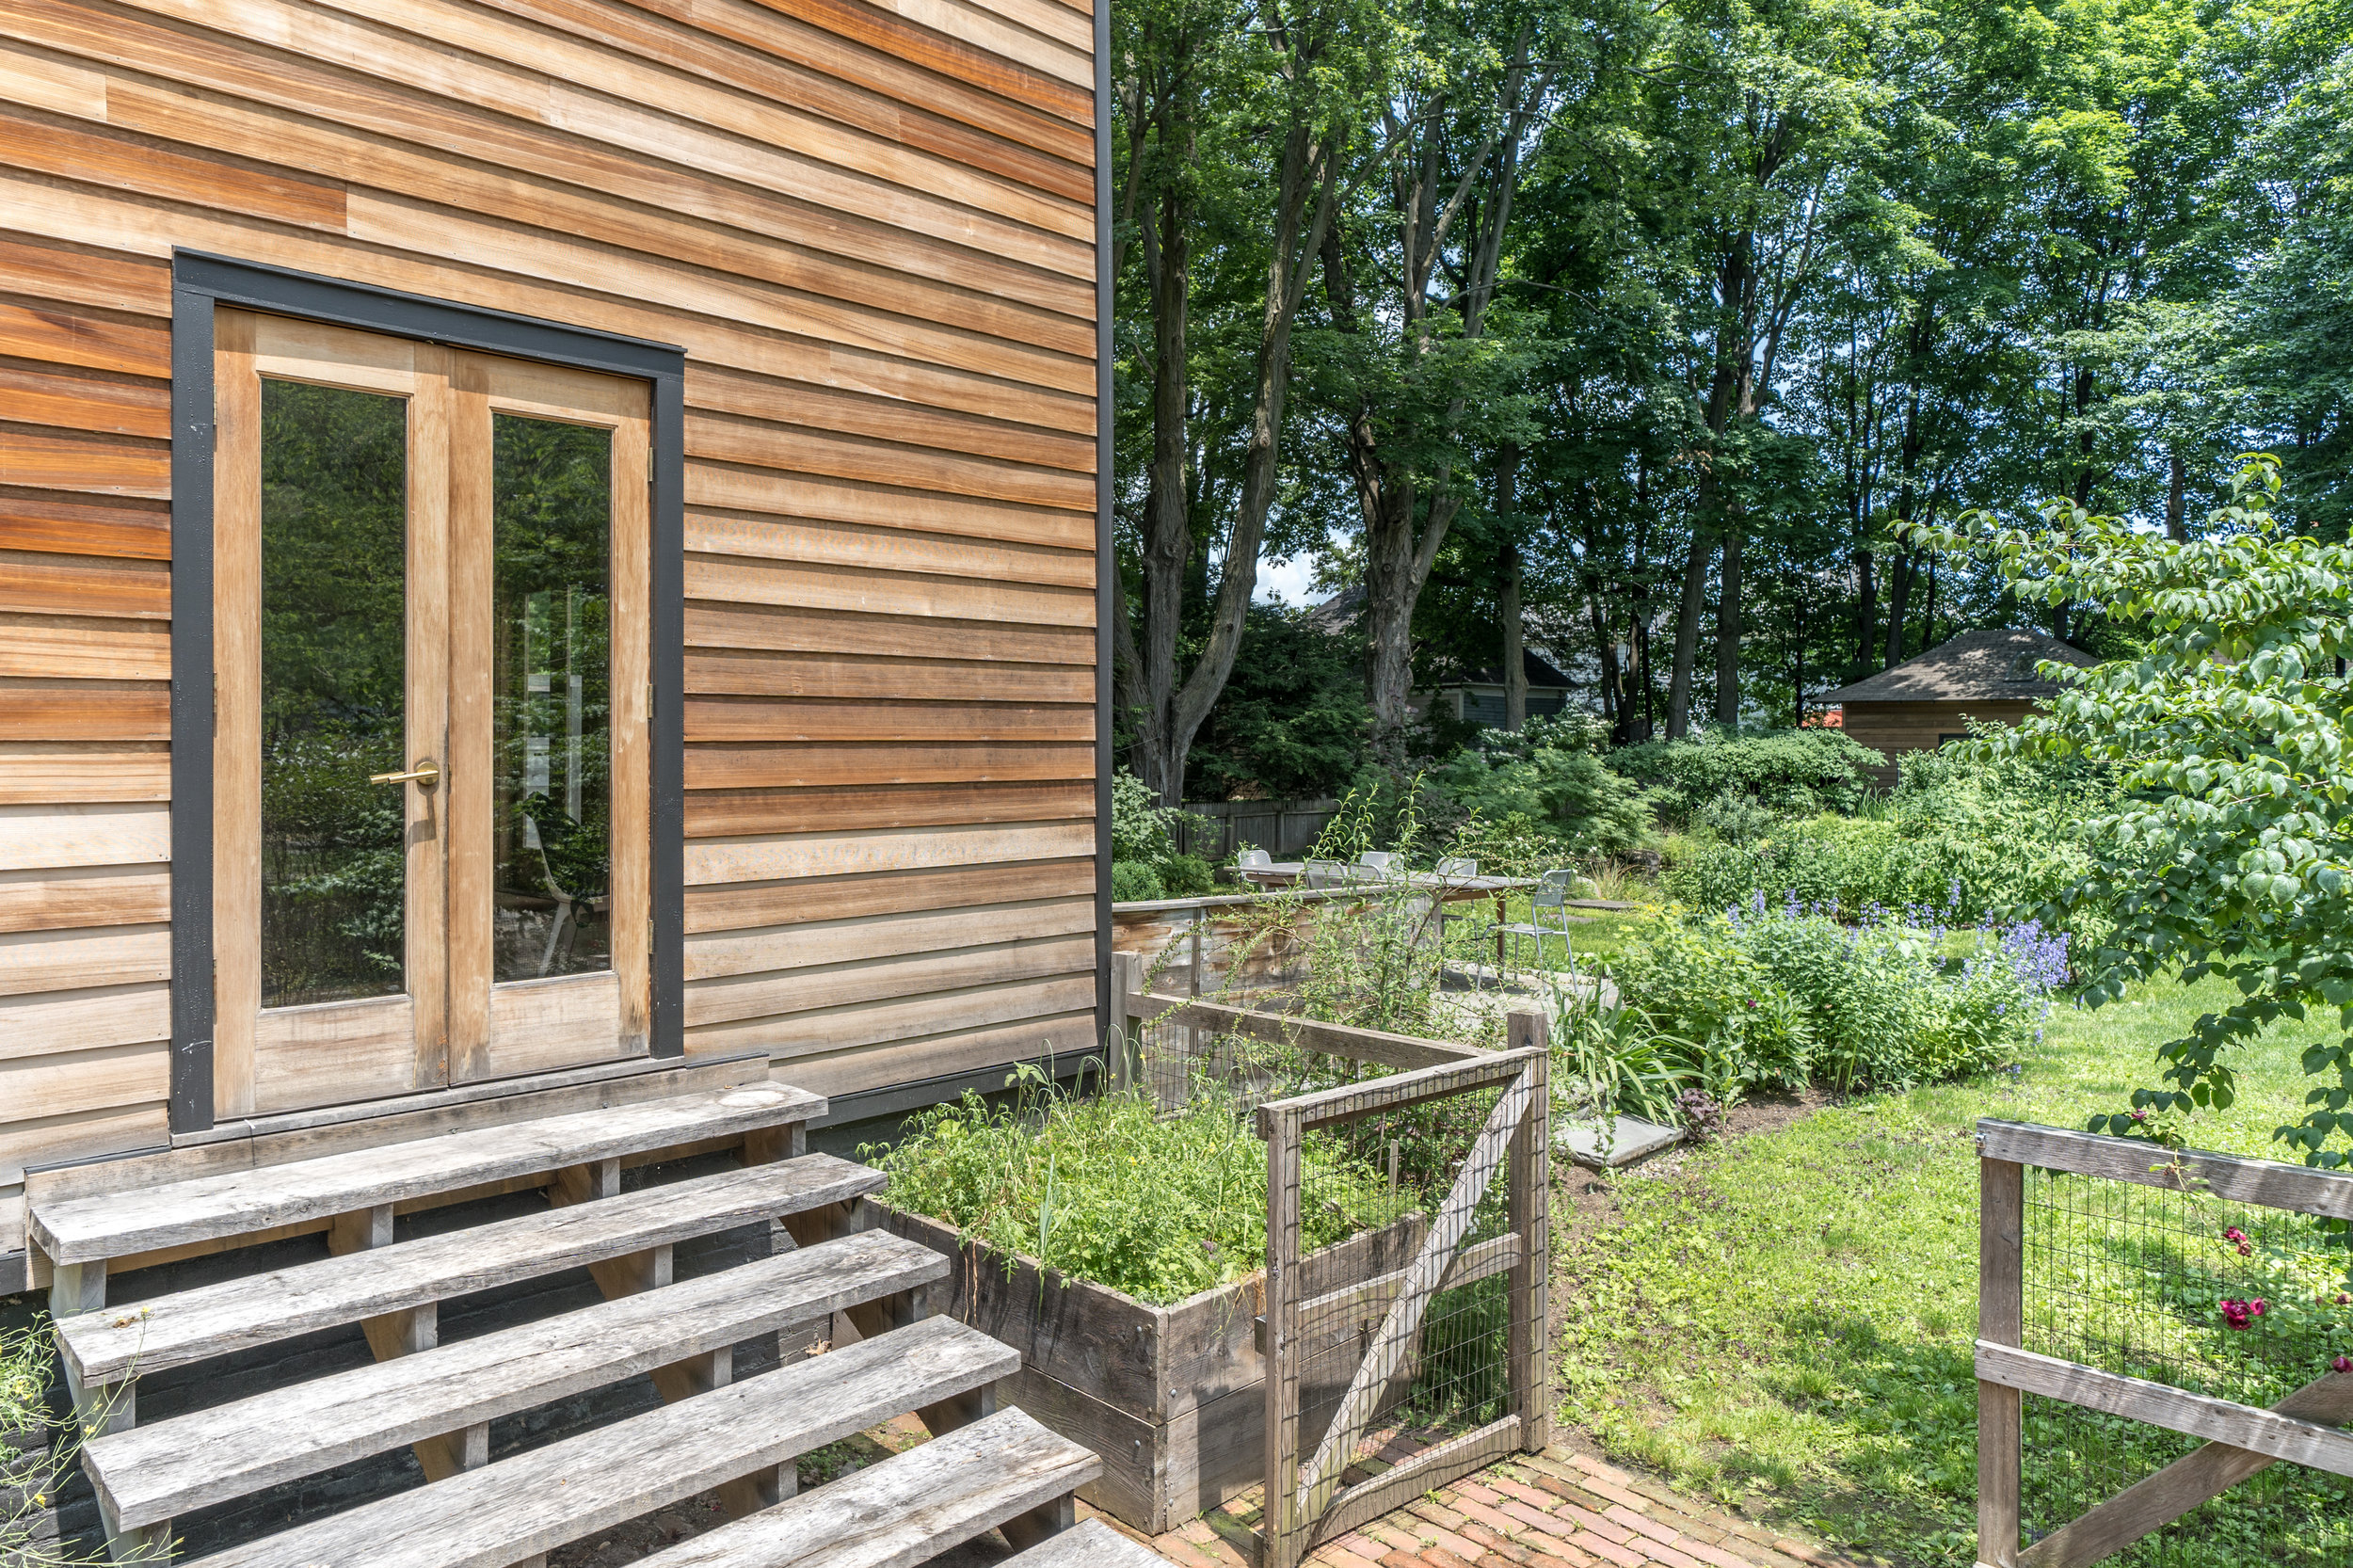 UptownKingston-Cedar-Siding-Garden.jpg